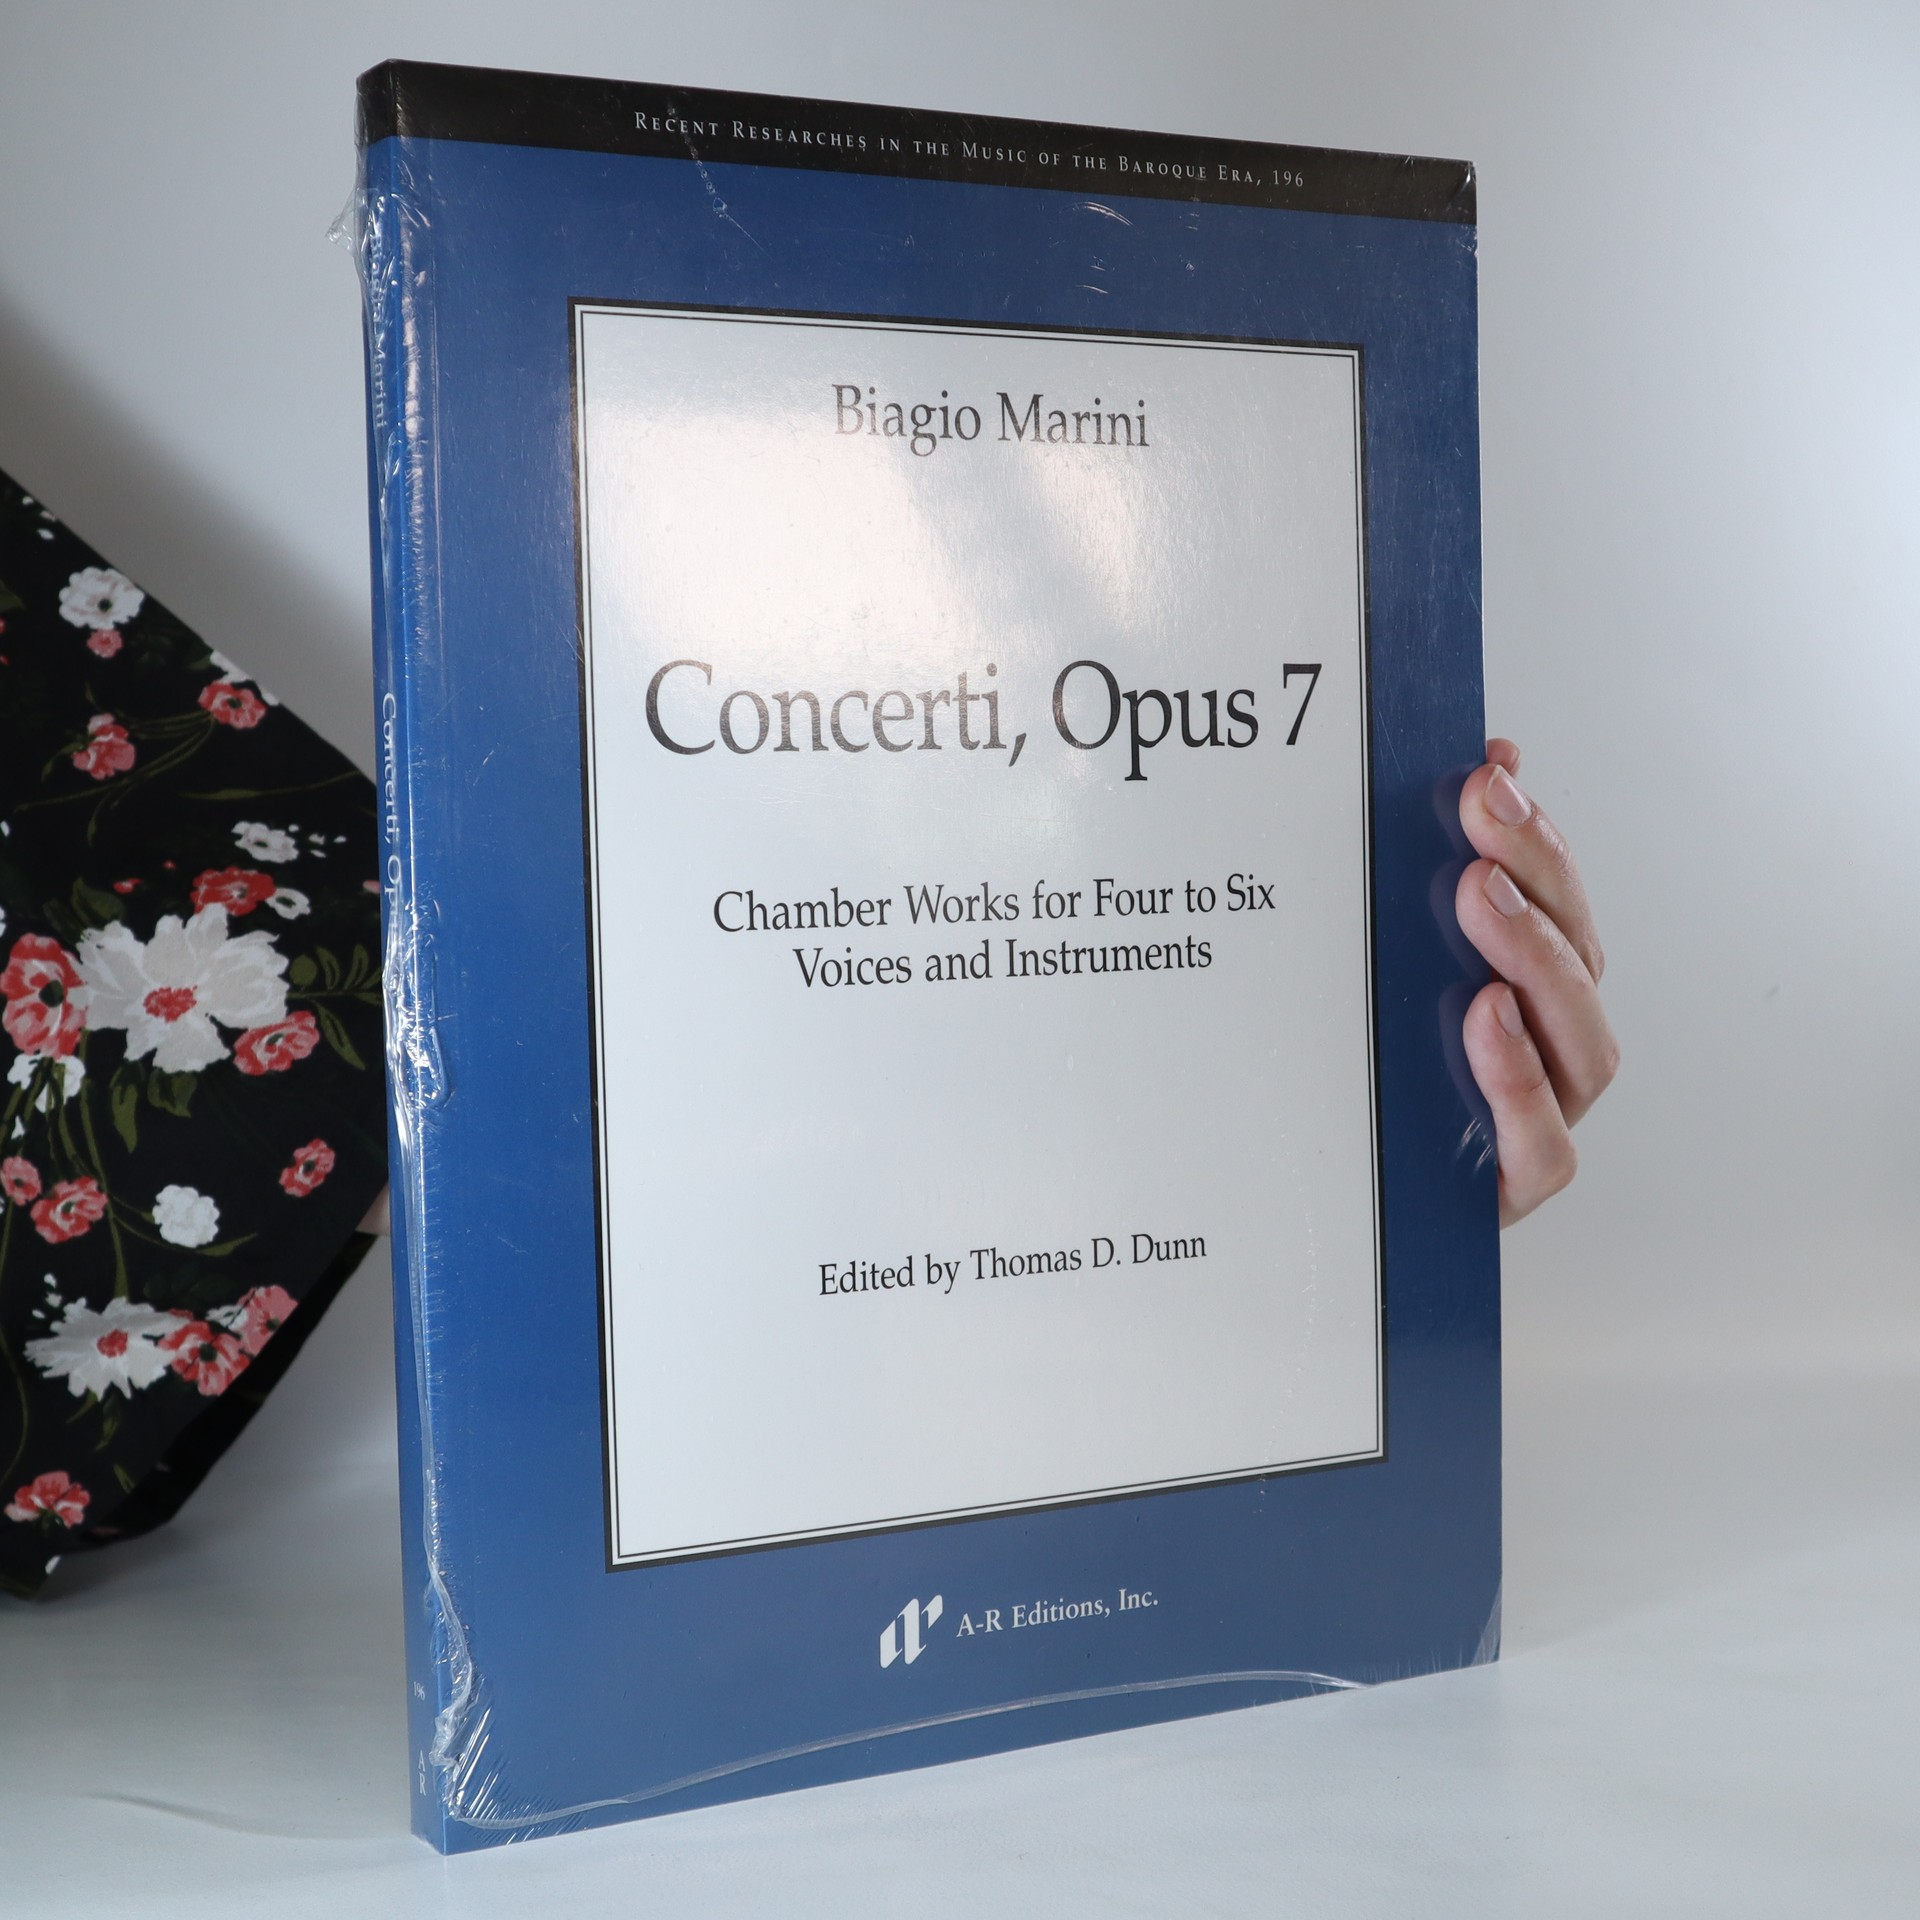 antikvární kniha Concerti, opus 7. Chamber works for four to six voices and instruments, neuveden